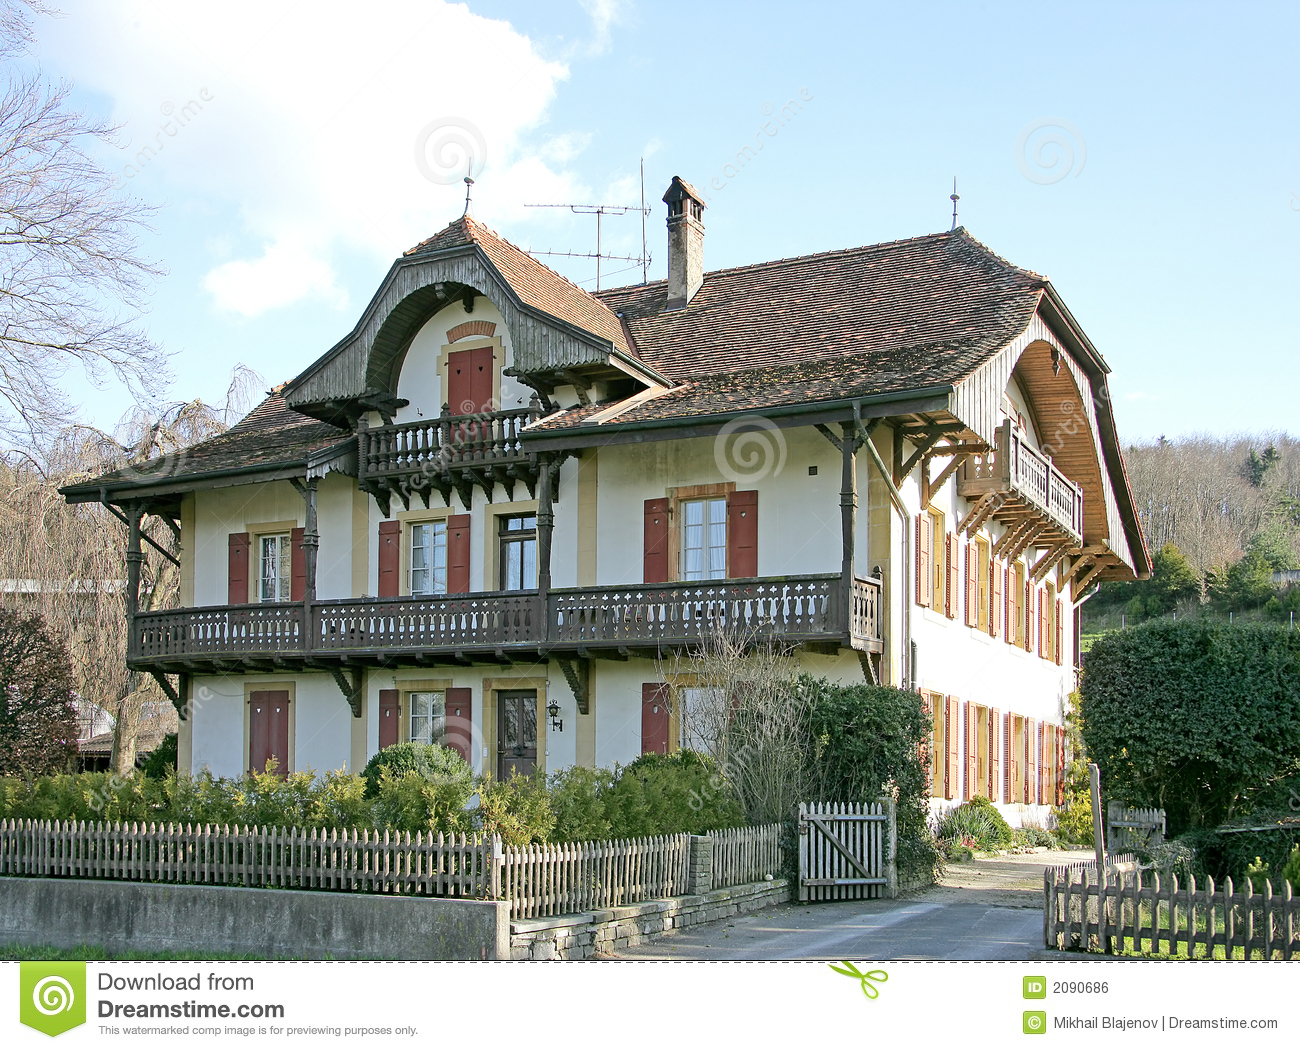 Old Swiss House 13 stock photo. Image of balcony, village